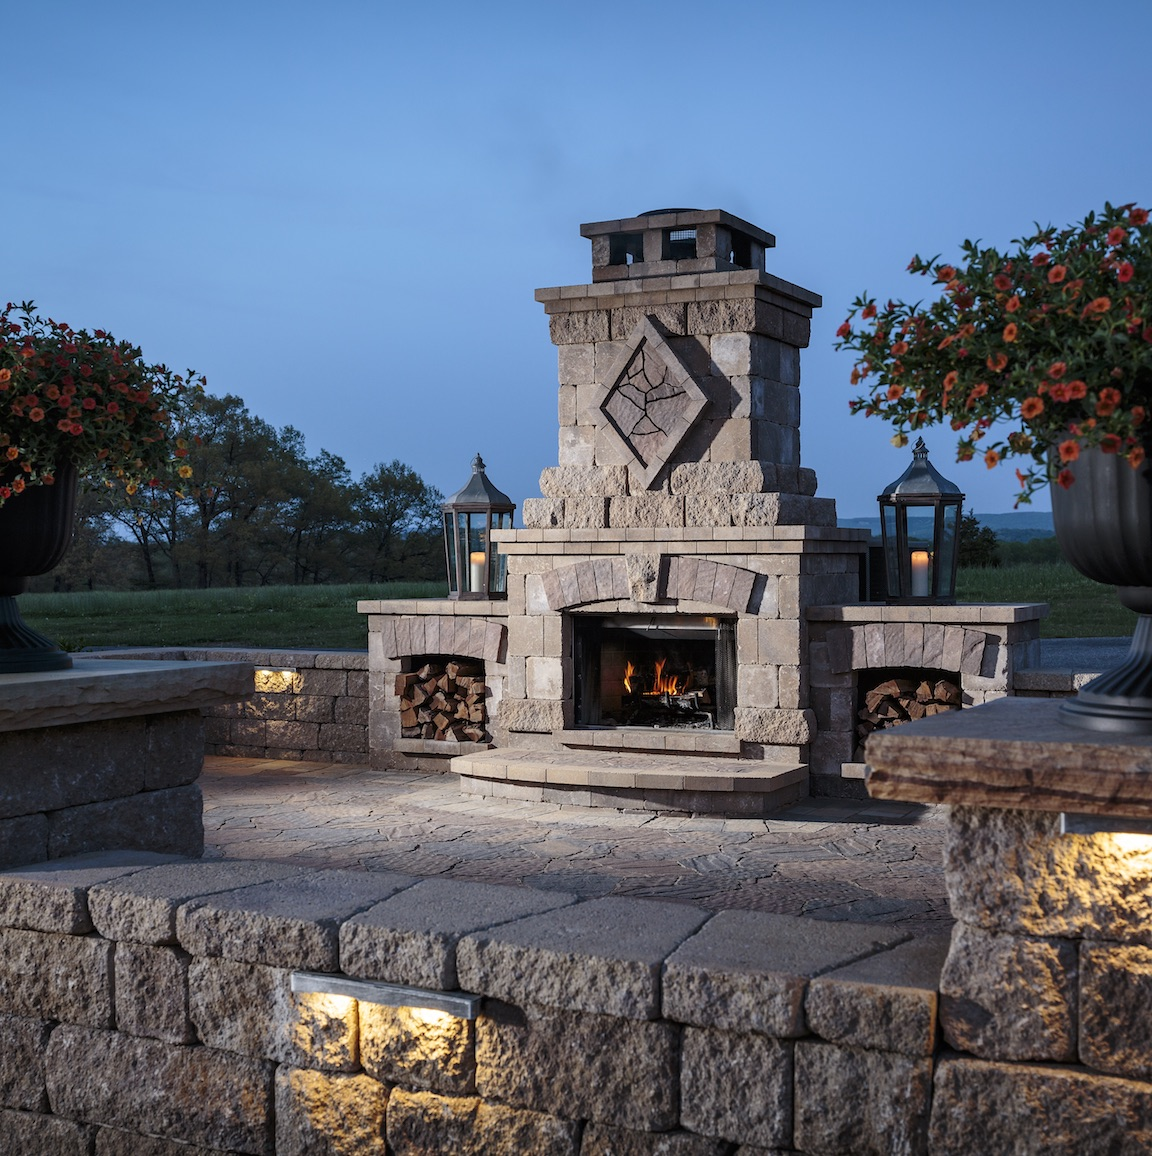 Extend the use of your outdoor living area and illuminate your space with  landscape lighting from Tru-Scapes Landscape Lighting products. Explore the  elegant outdoor lighting options, whether accent, hardscape, or pathway  lighting-the possibilities are endless with Tru-Scapes and O&G by your side.